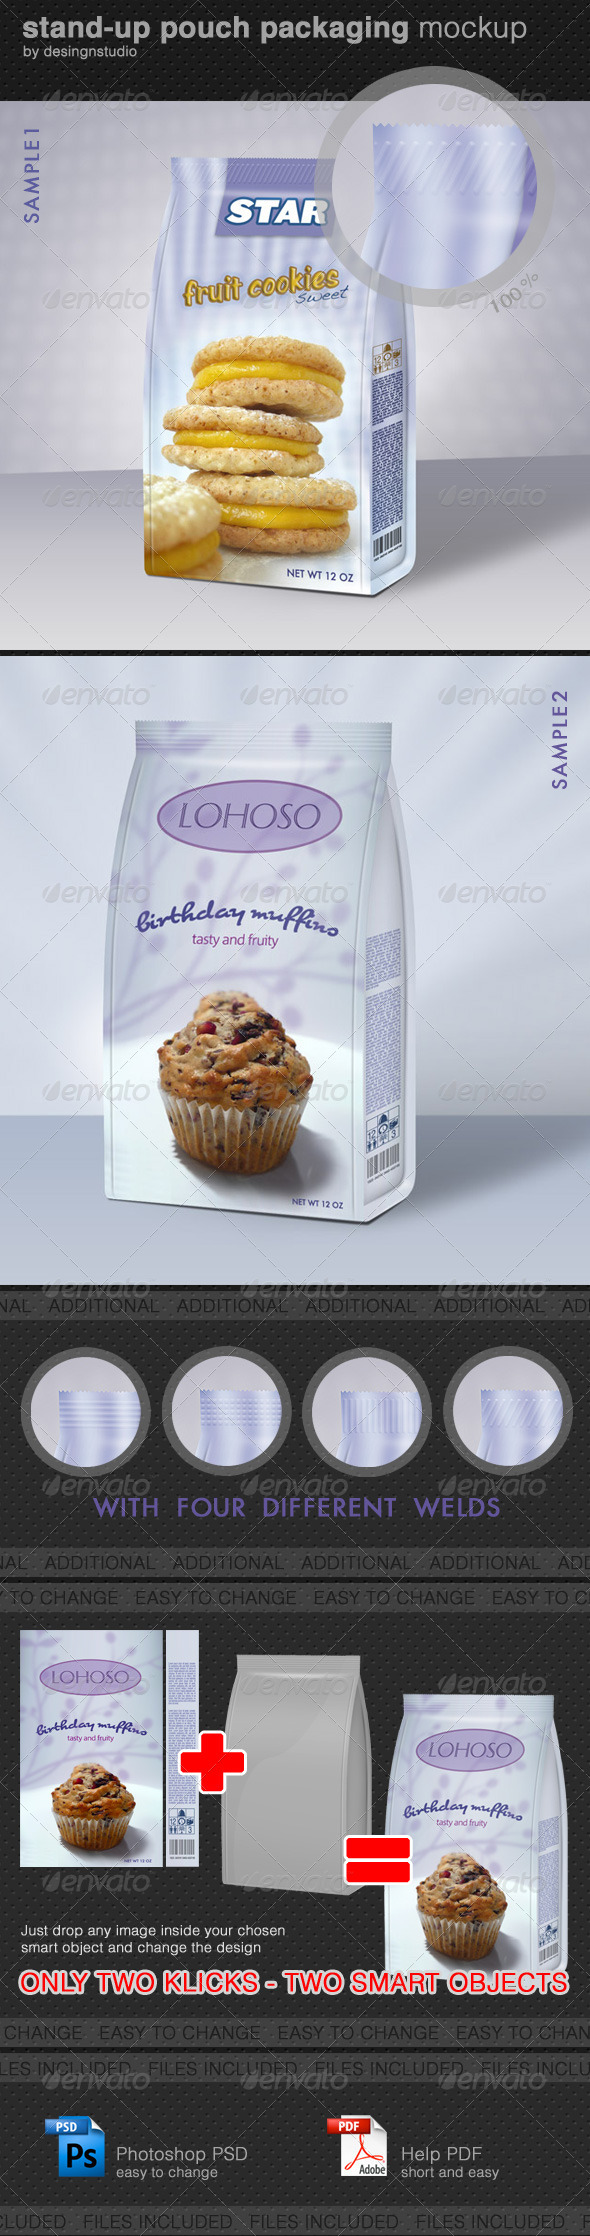 Stand-Up Pouch Packaging Mock-Up - Food and Drink Packaging